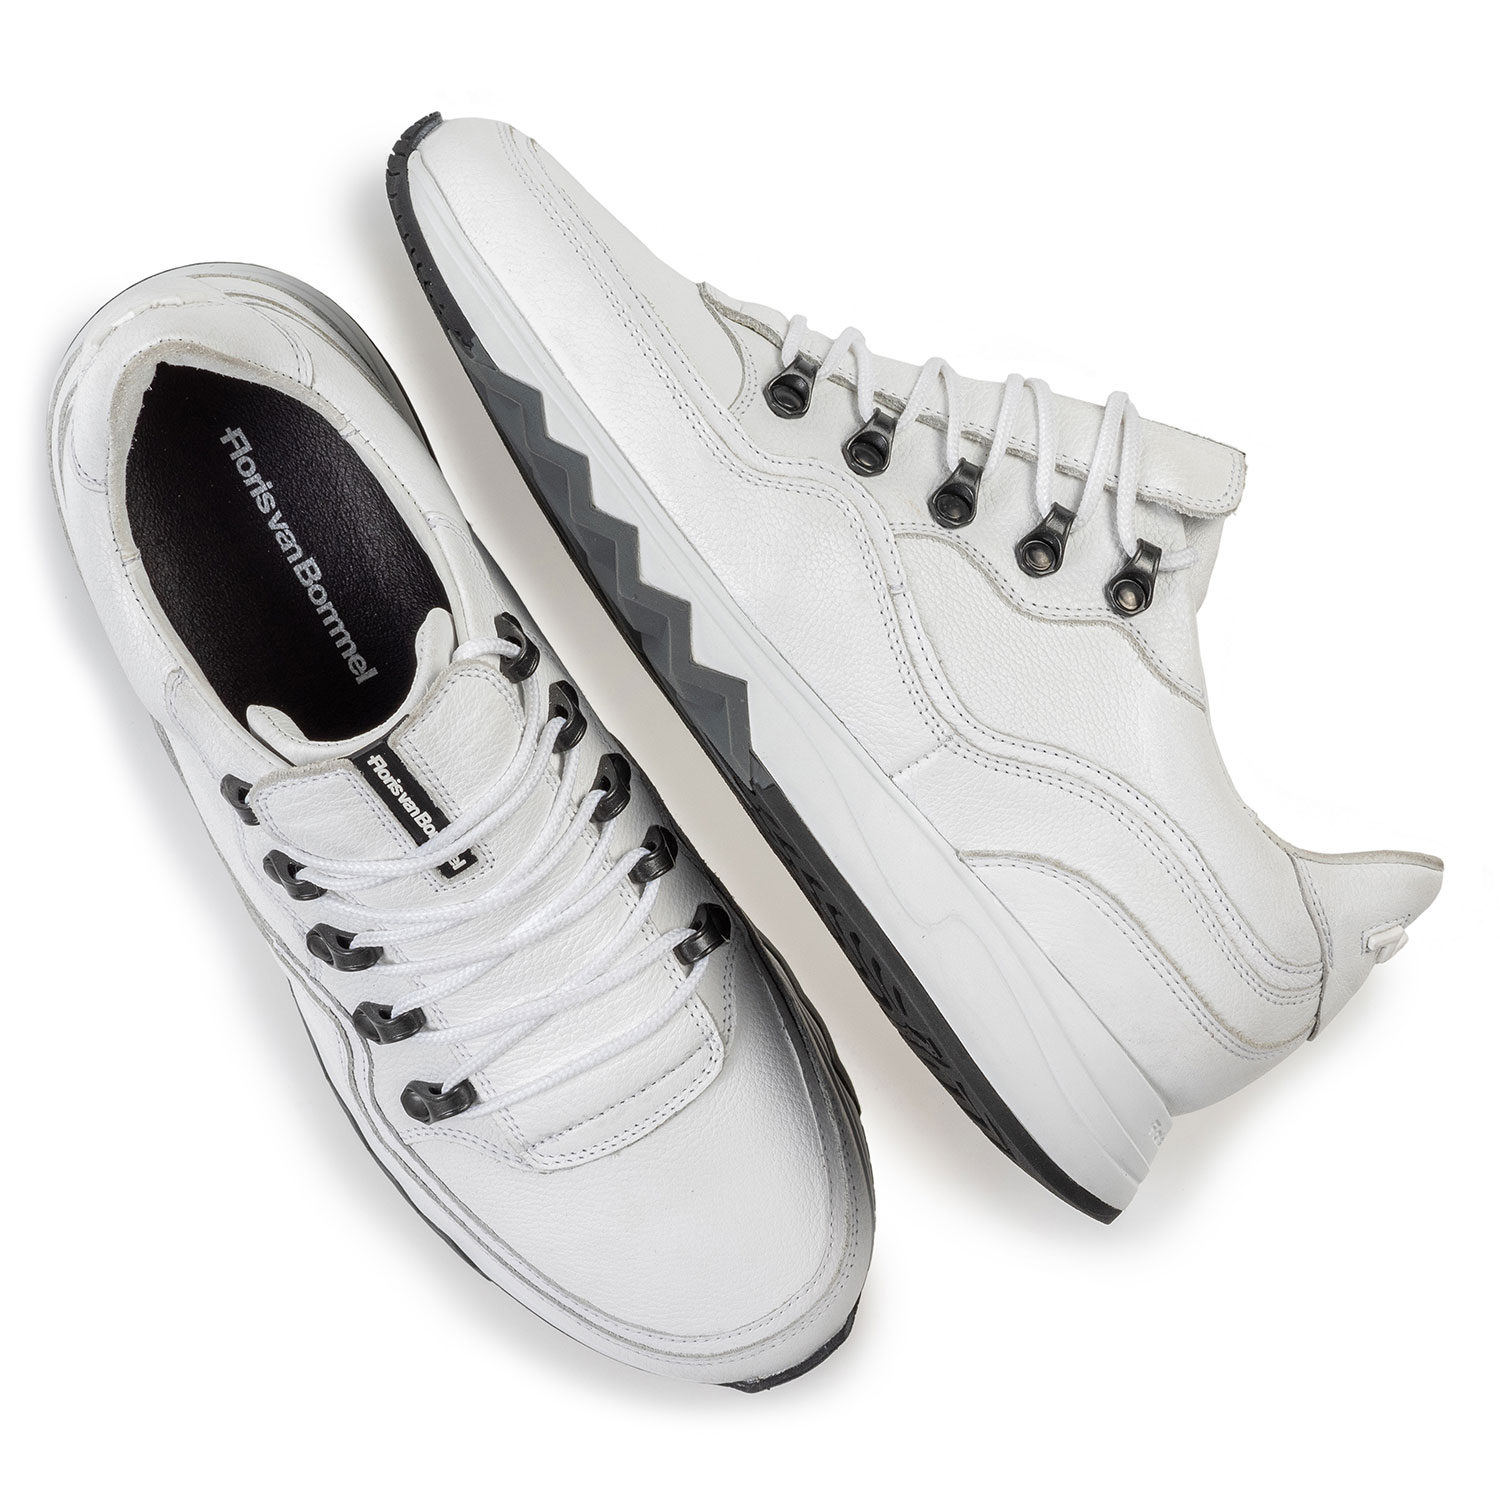 16393/14 - Sneaker with structured pattern white